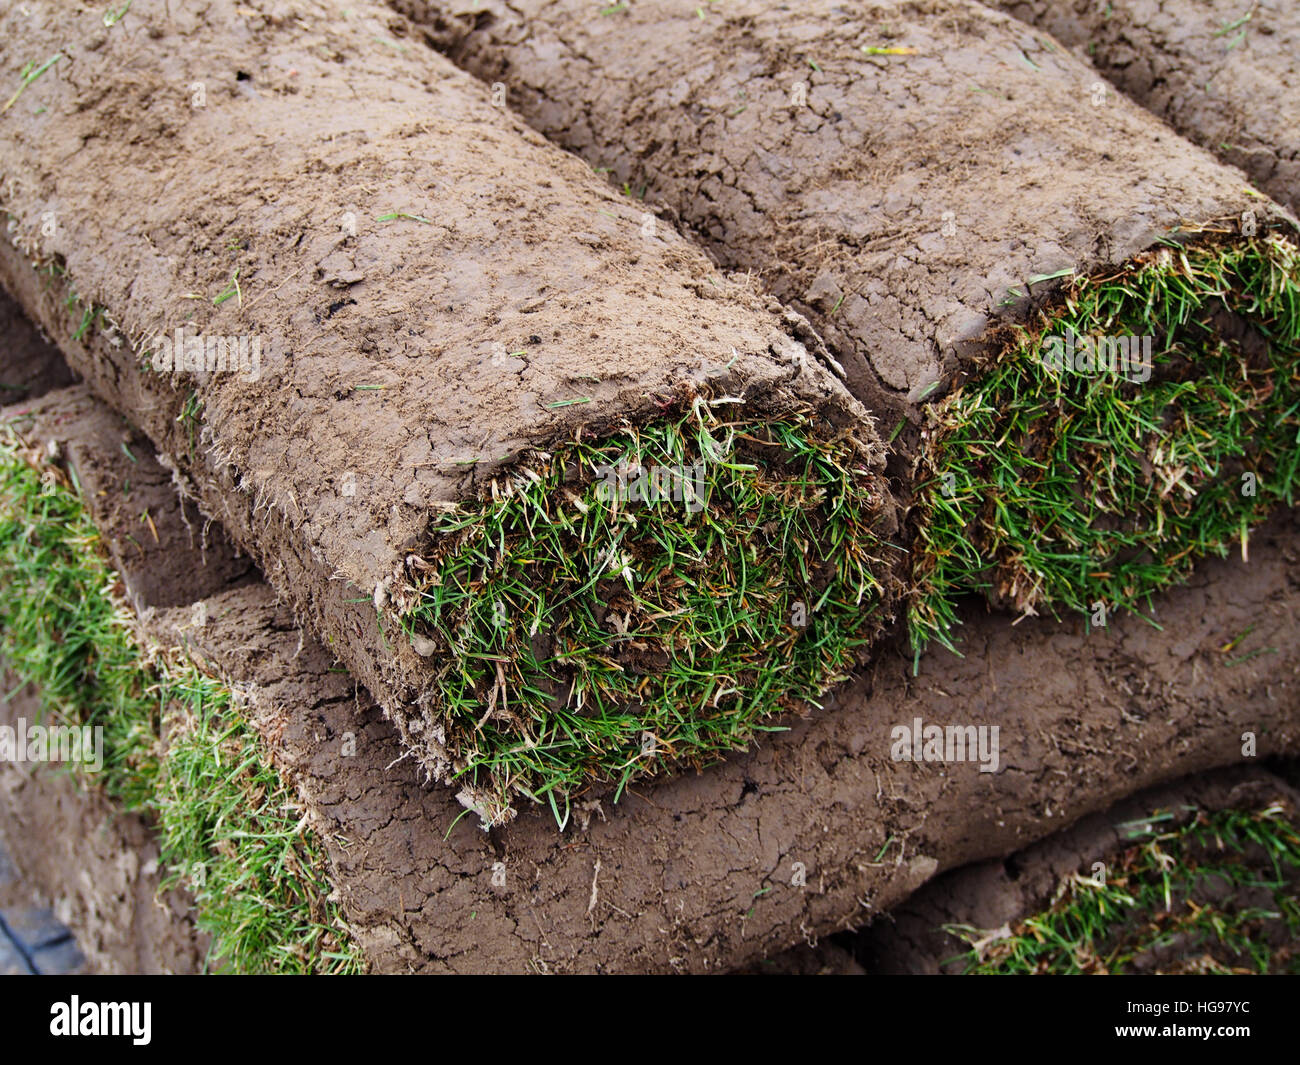 Image result for rolled up turf